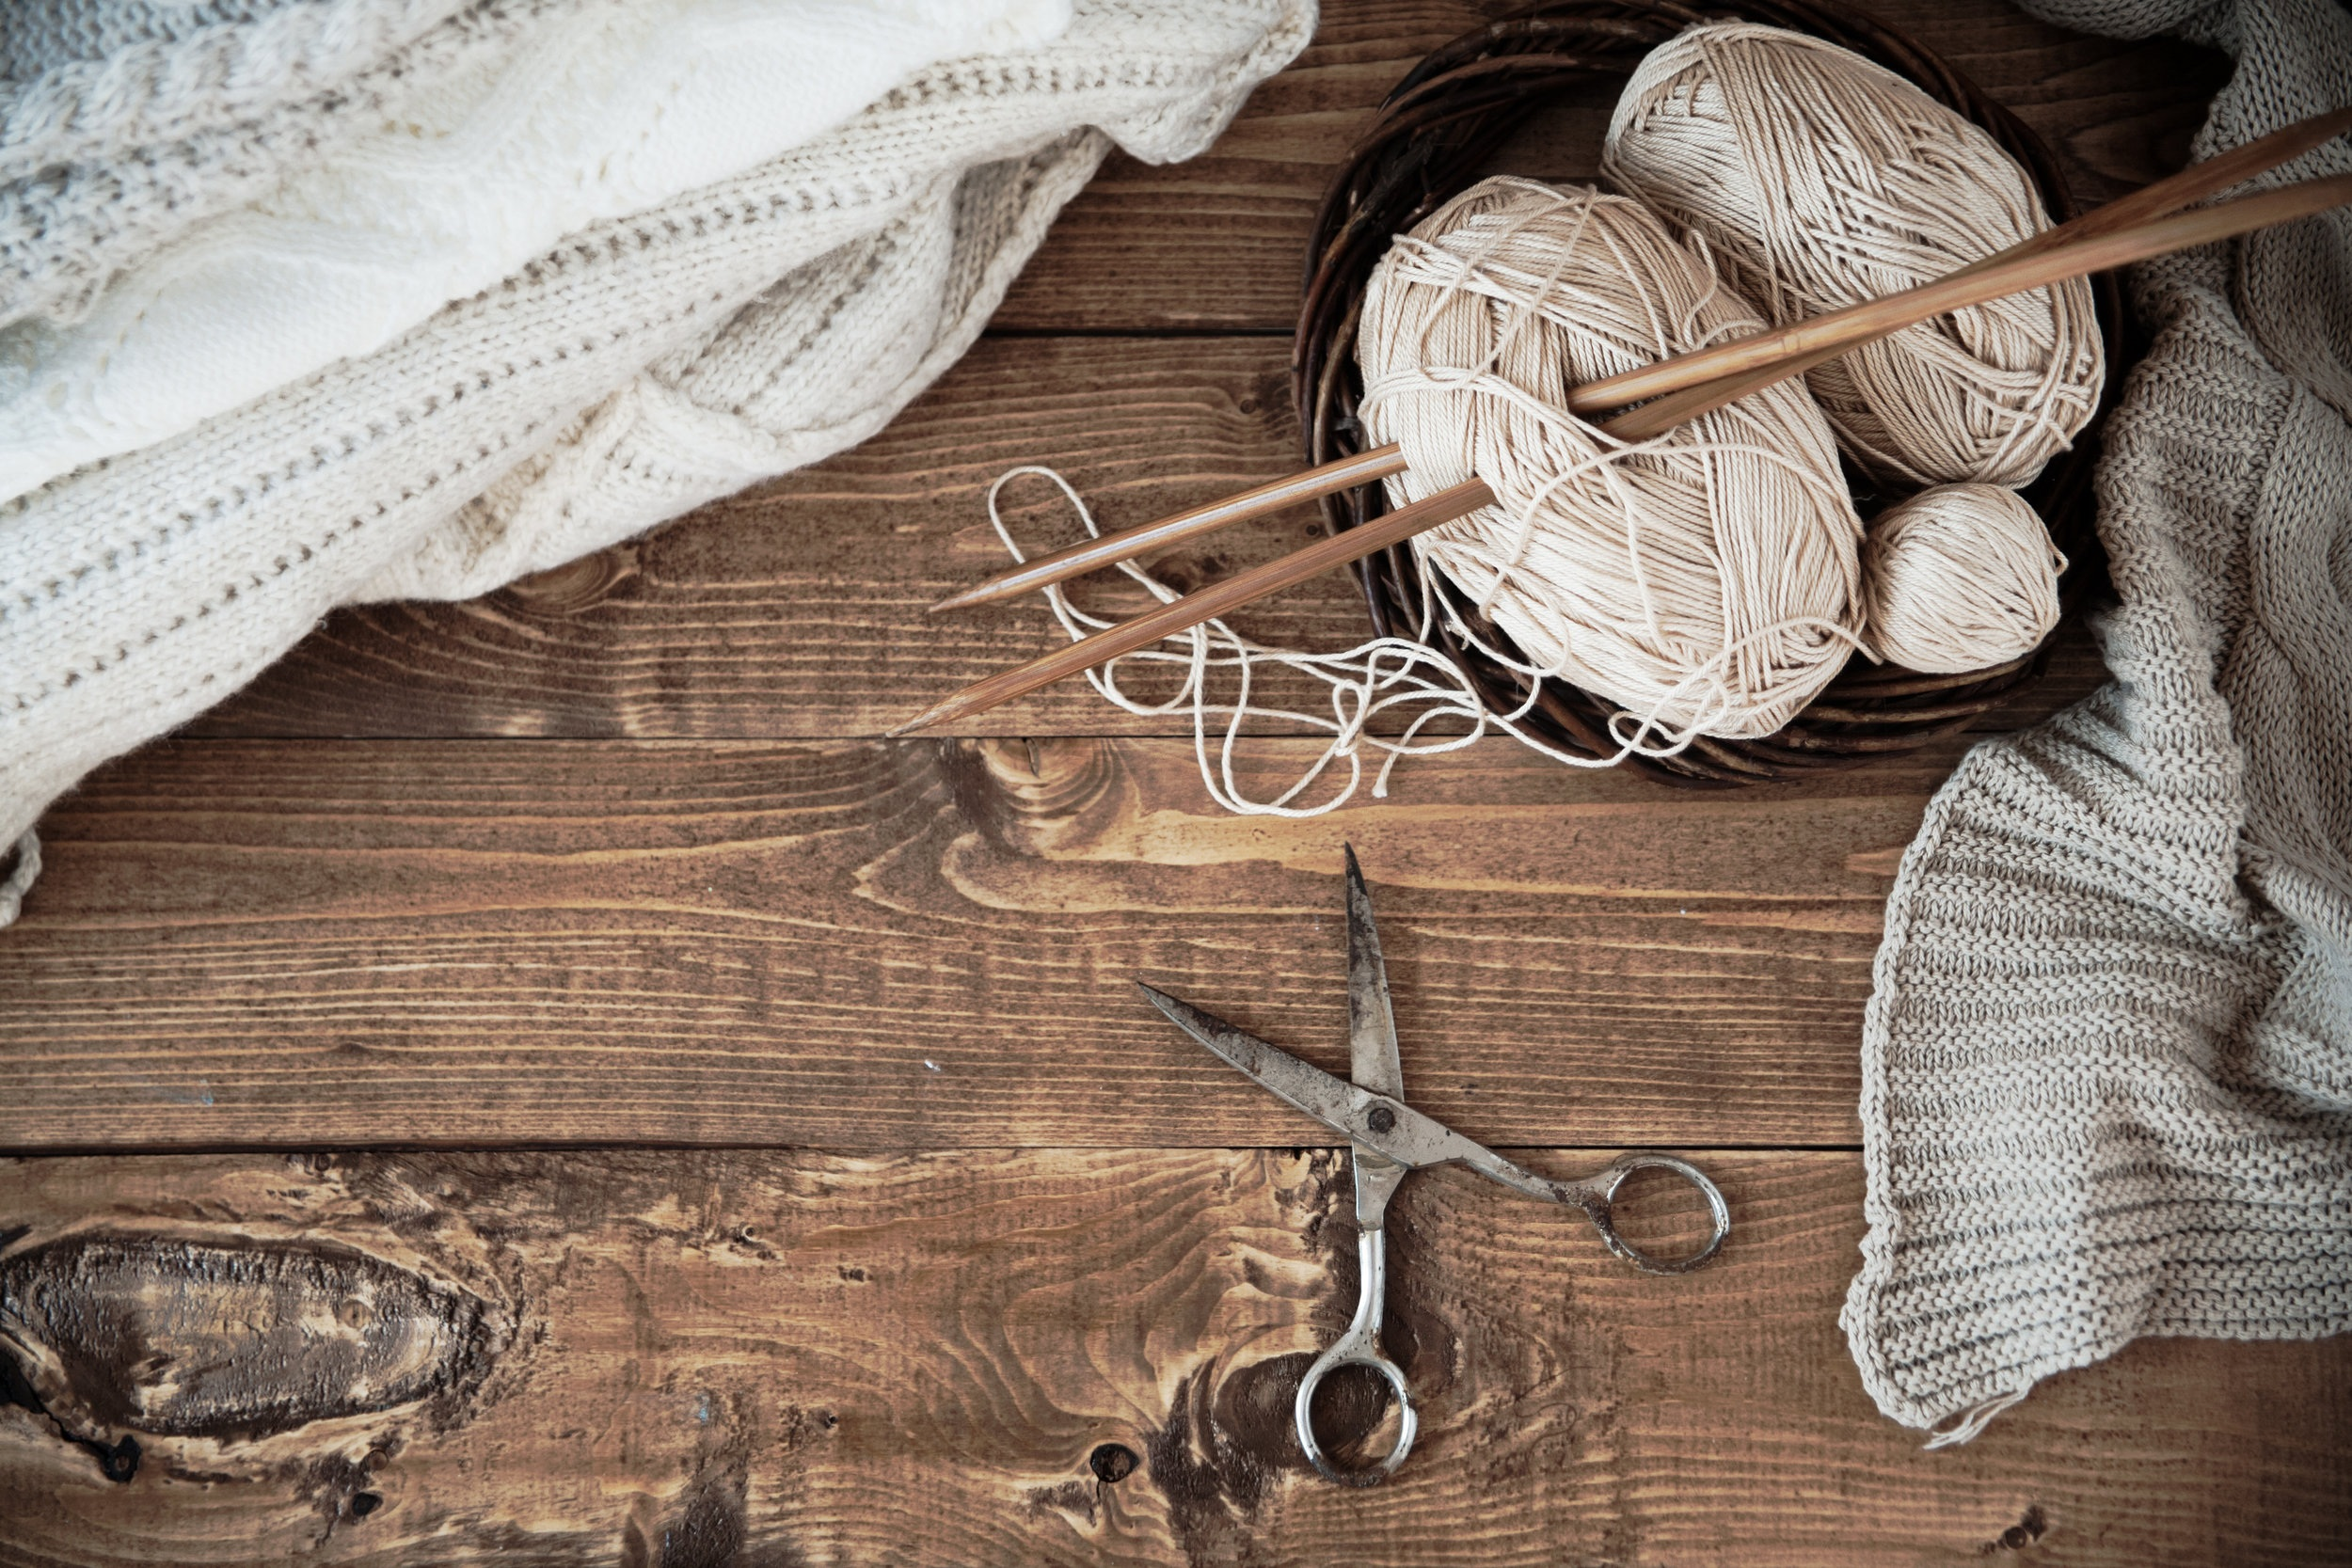 Craft Camp - Friday 12 July - Sunday 14 July 2019A weekend away with friends. Broaden your fibre craft horizons.Tickets on sale 10am Monday 11 March